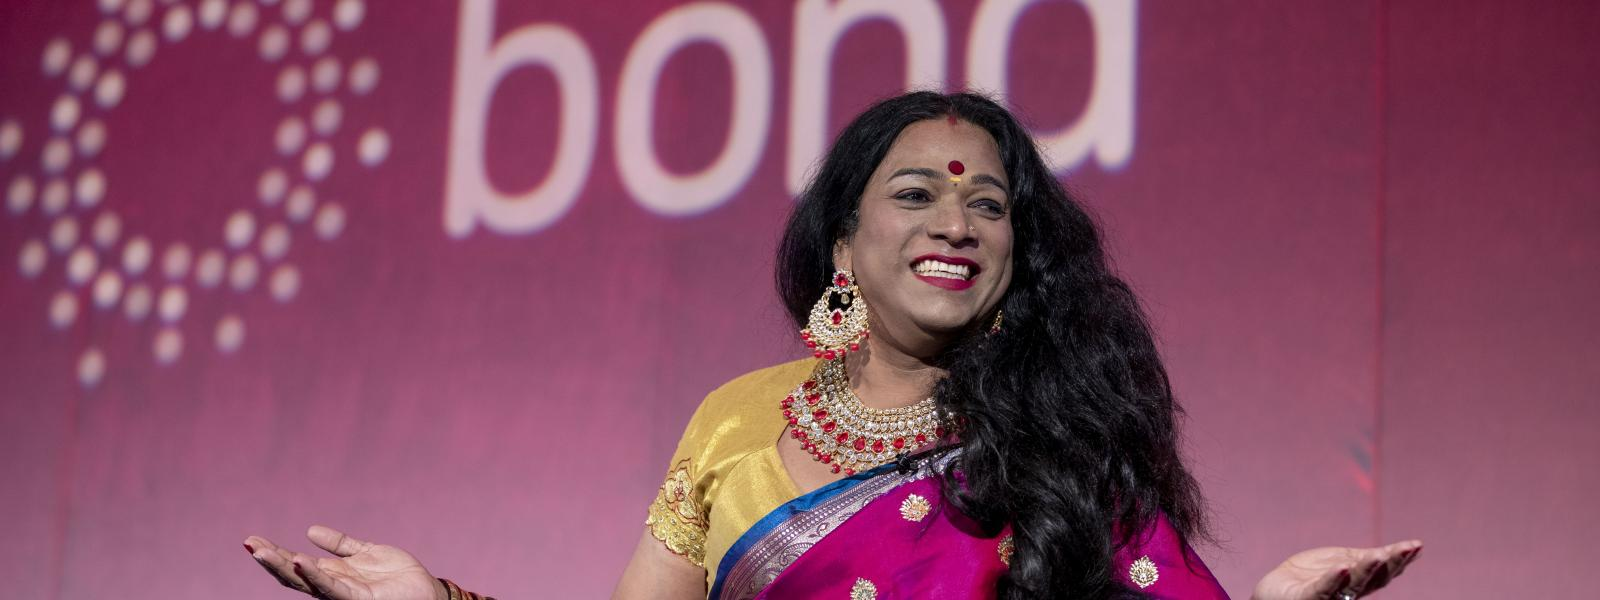 Indian trans activist Abheena Aher on stage at Bond Conference